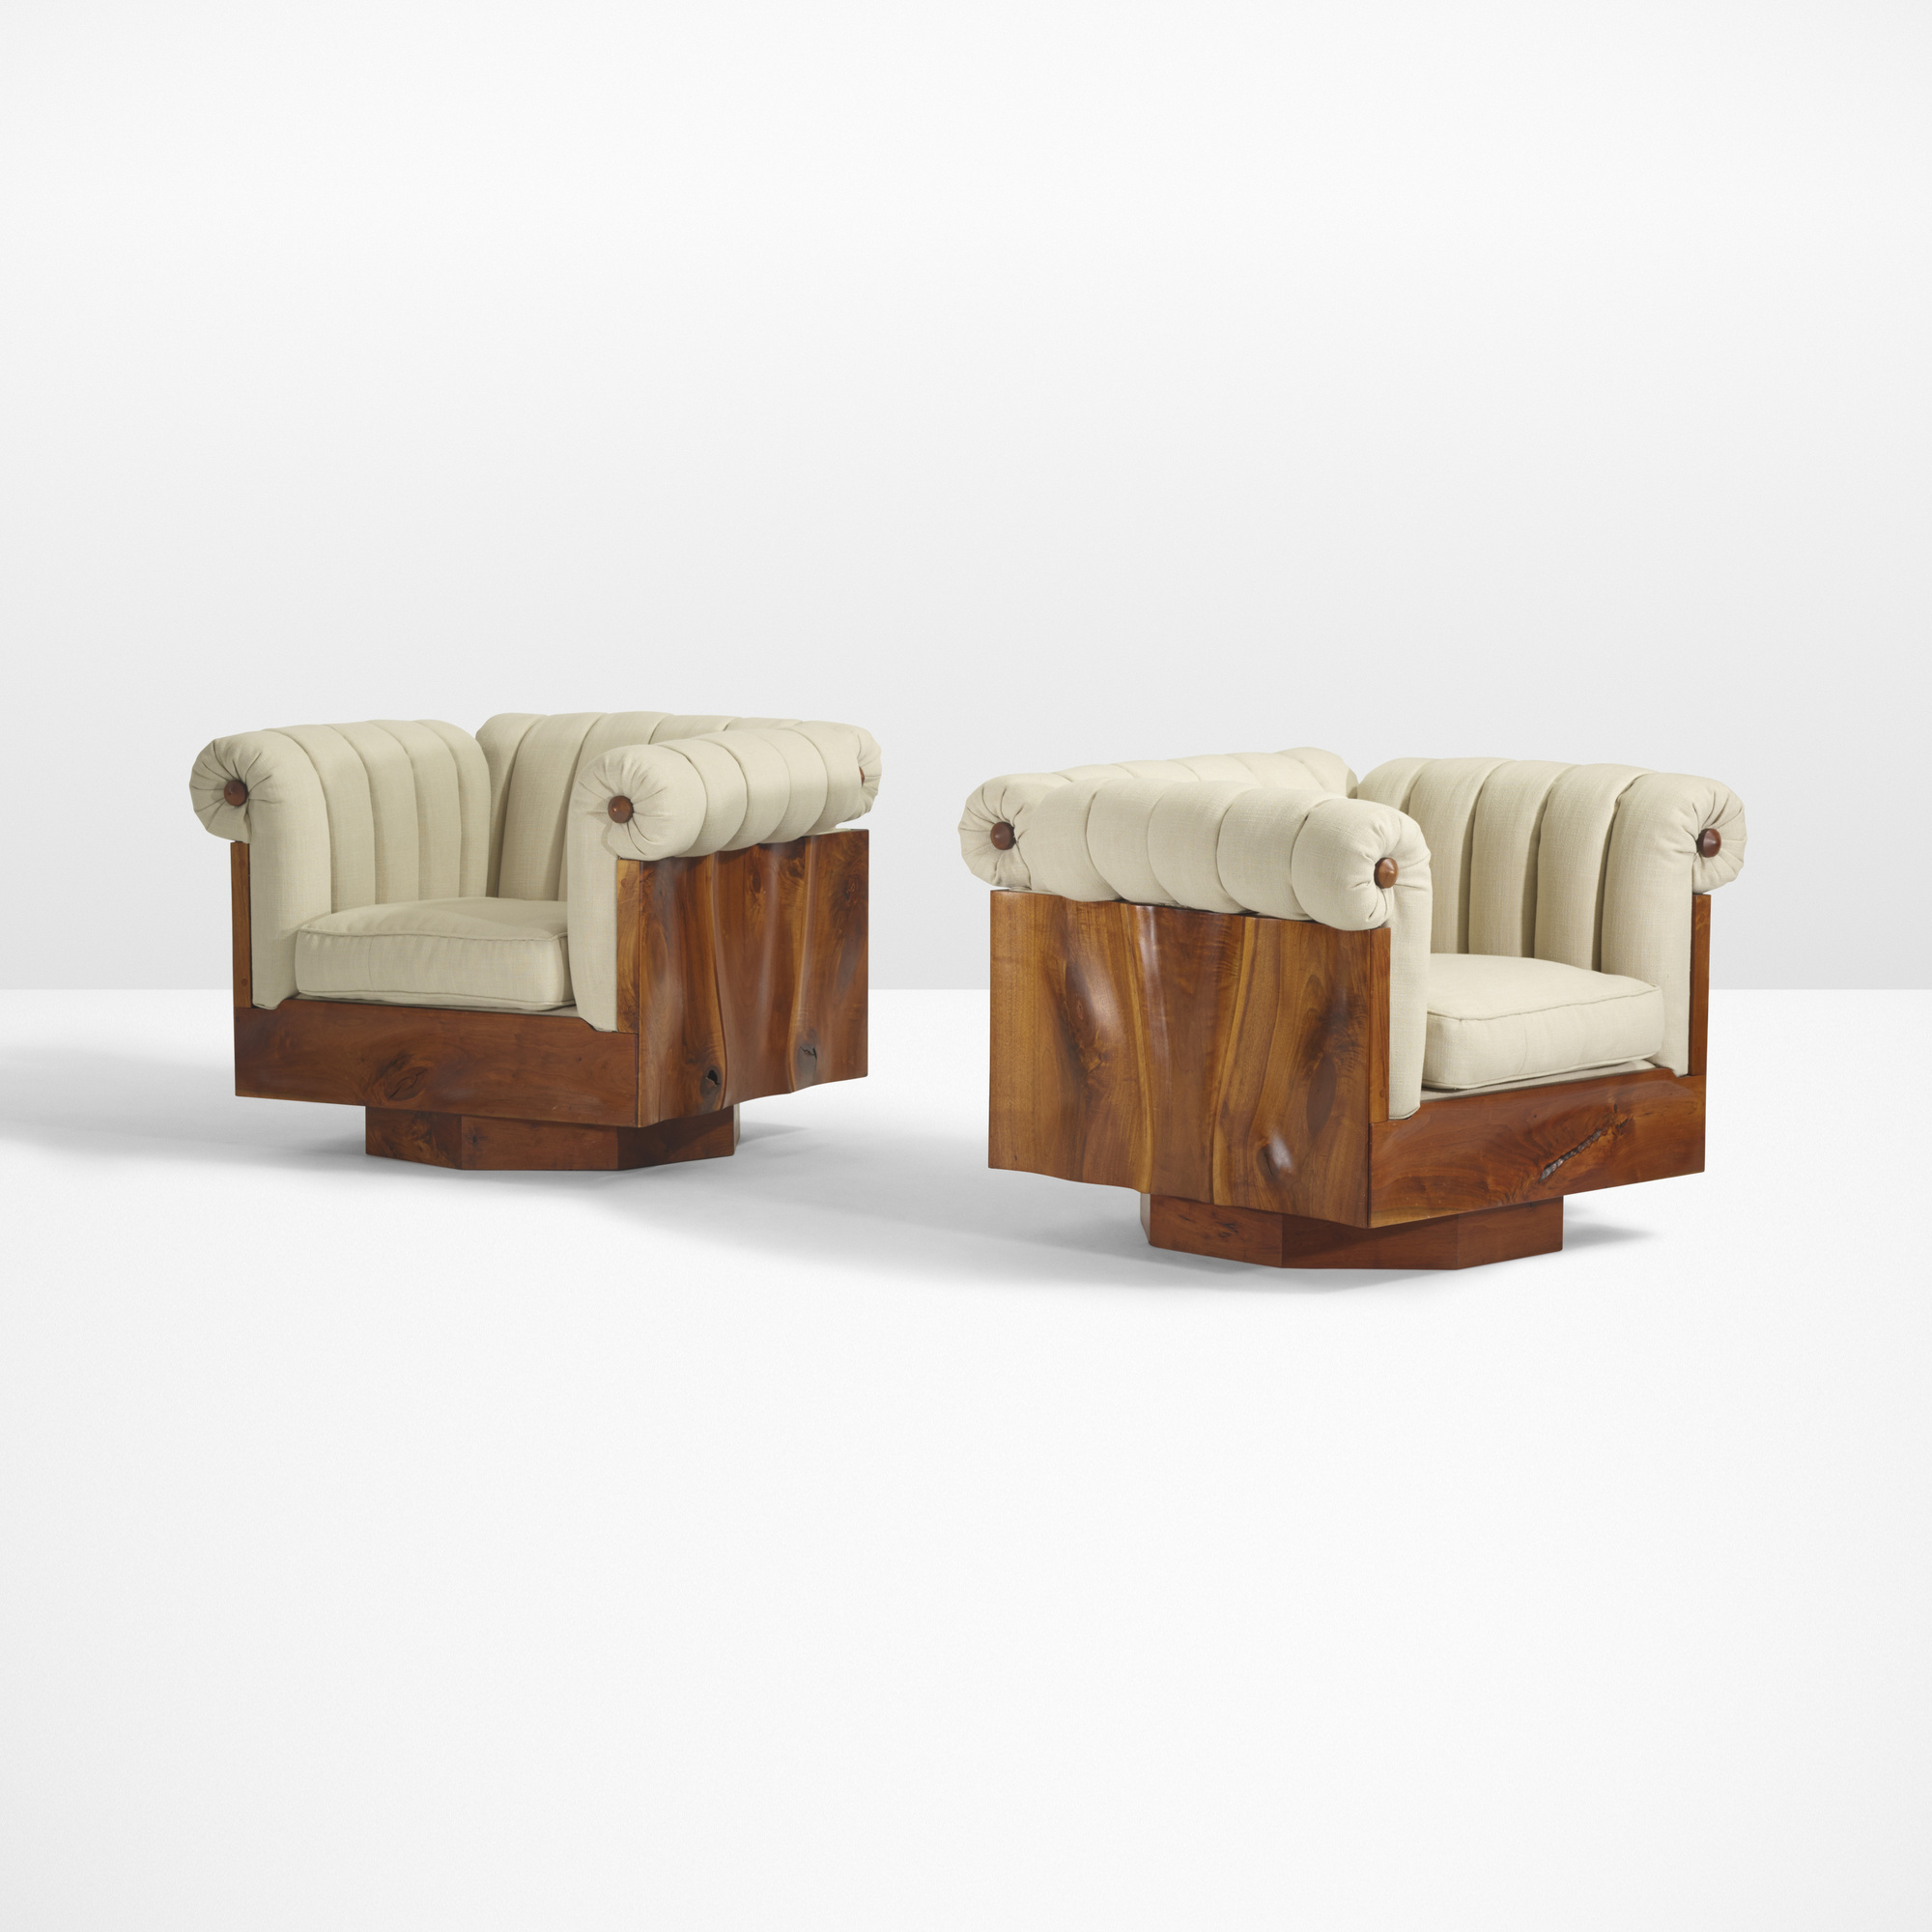 40: Phillip Lloyd Powell / Rare carved panel lounge chairs, pair (1 of 5)